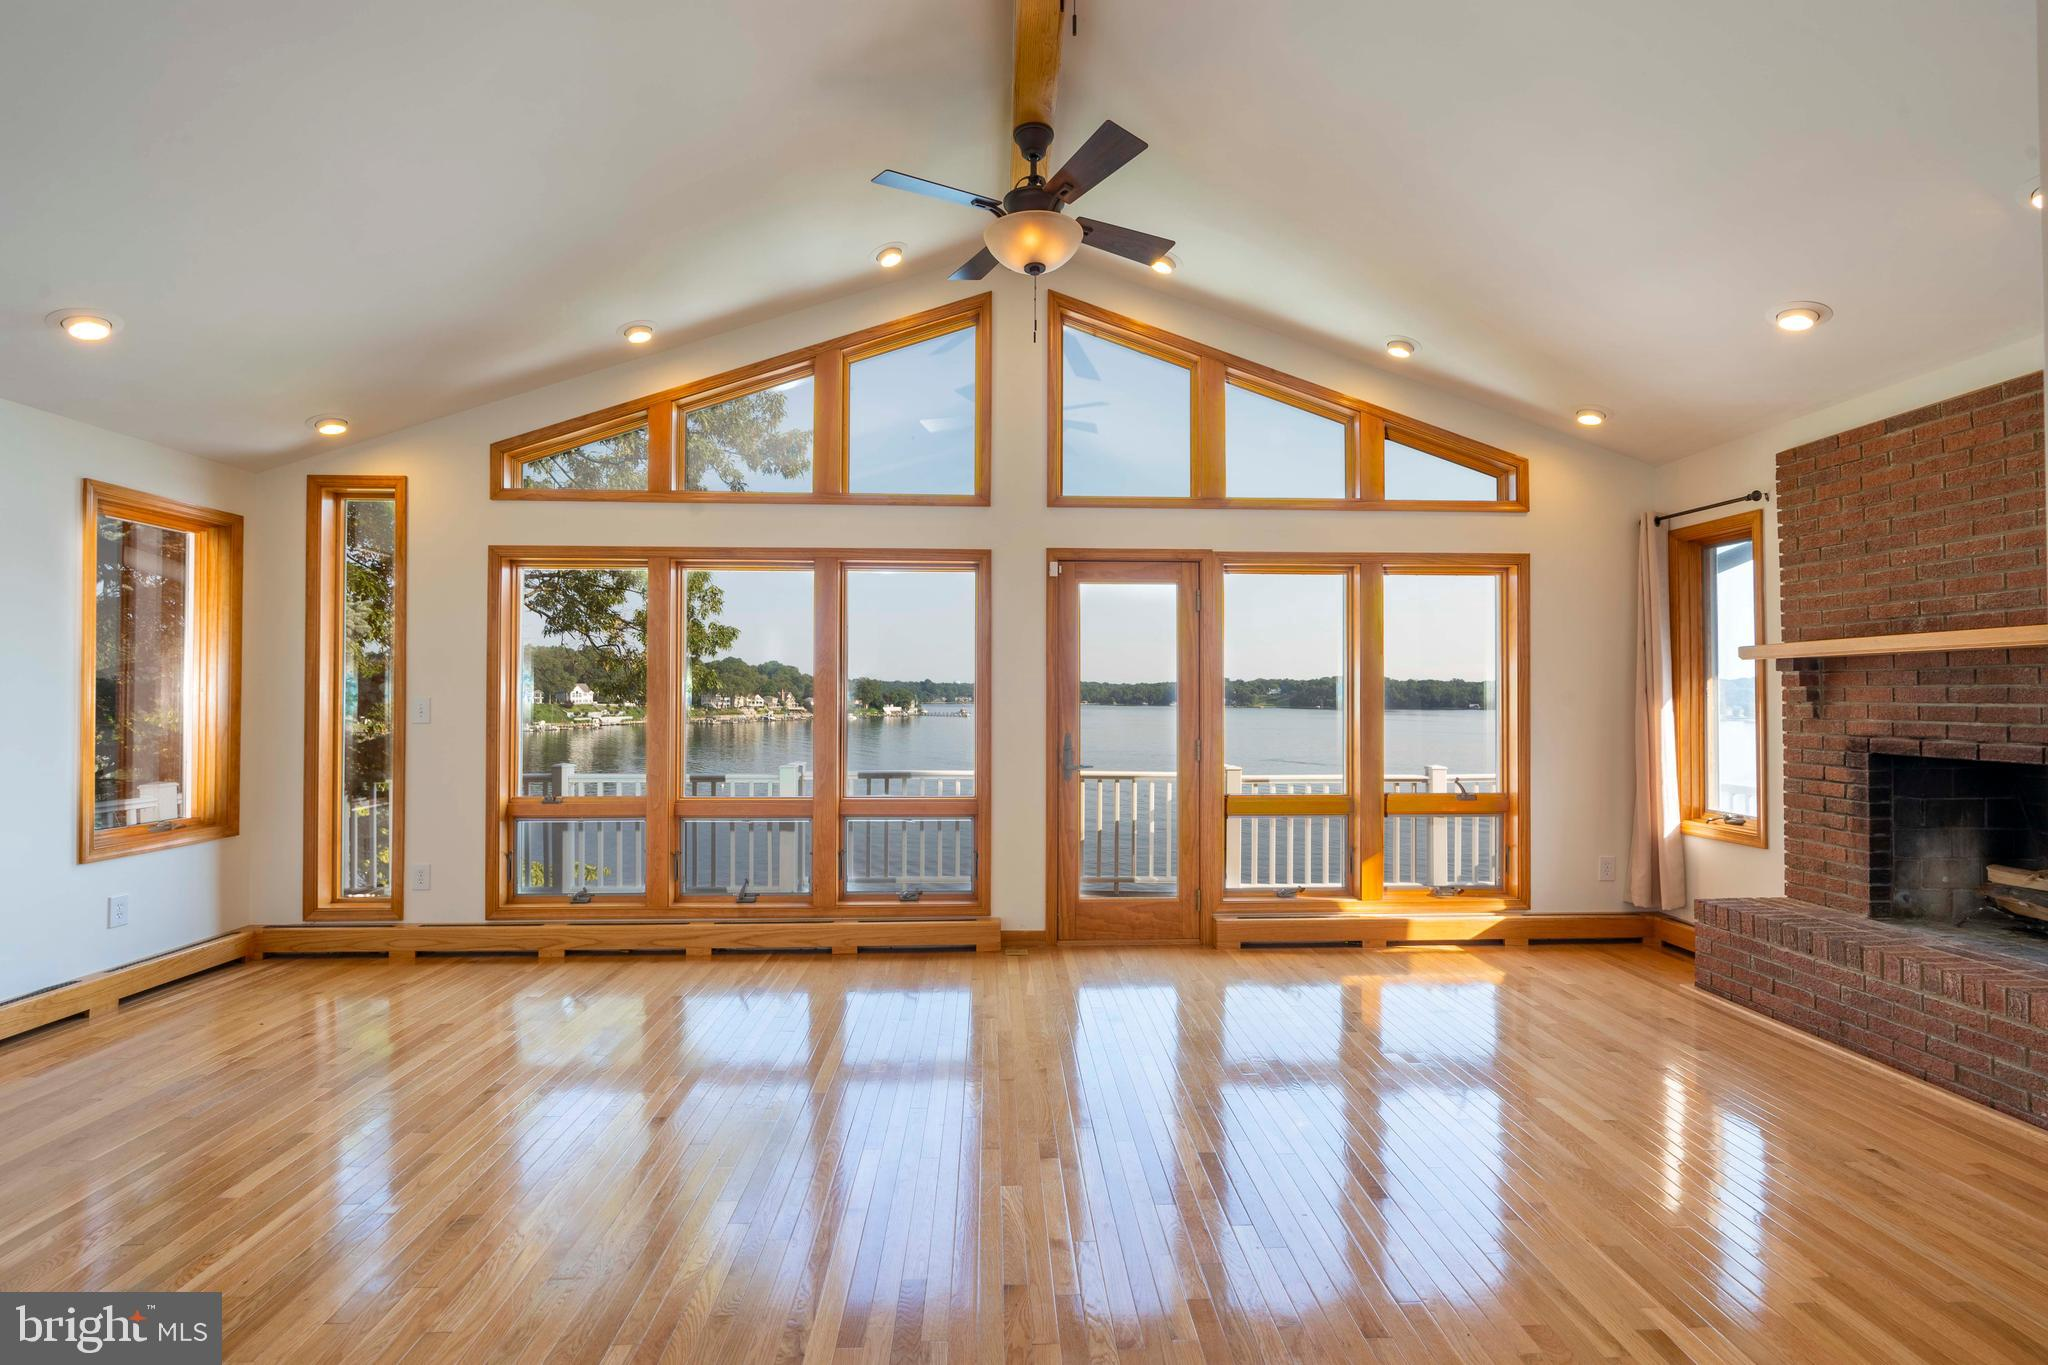 This waterfront home has breathtaking views of the scenic Severn River from both levels. The master